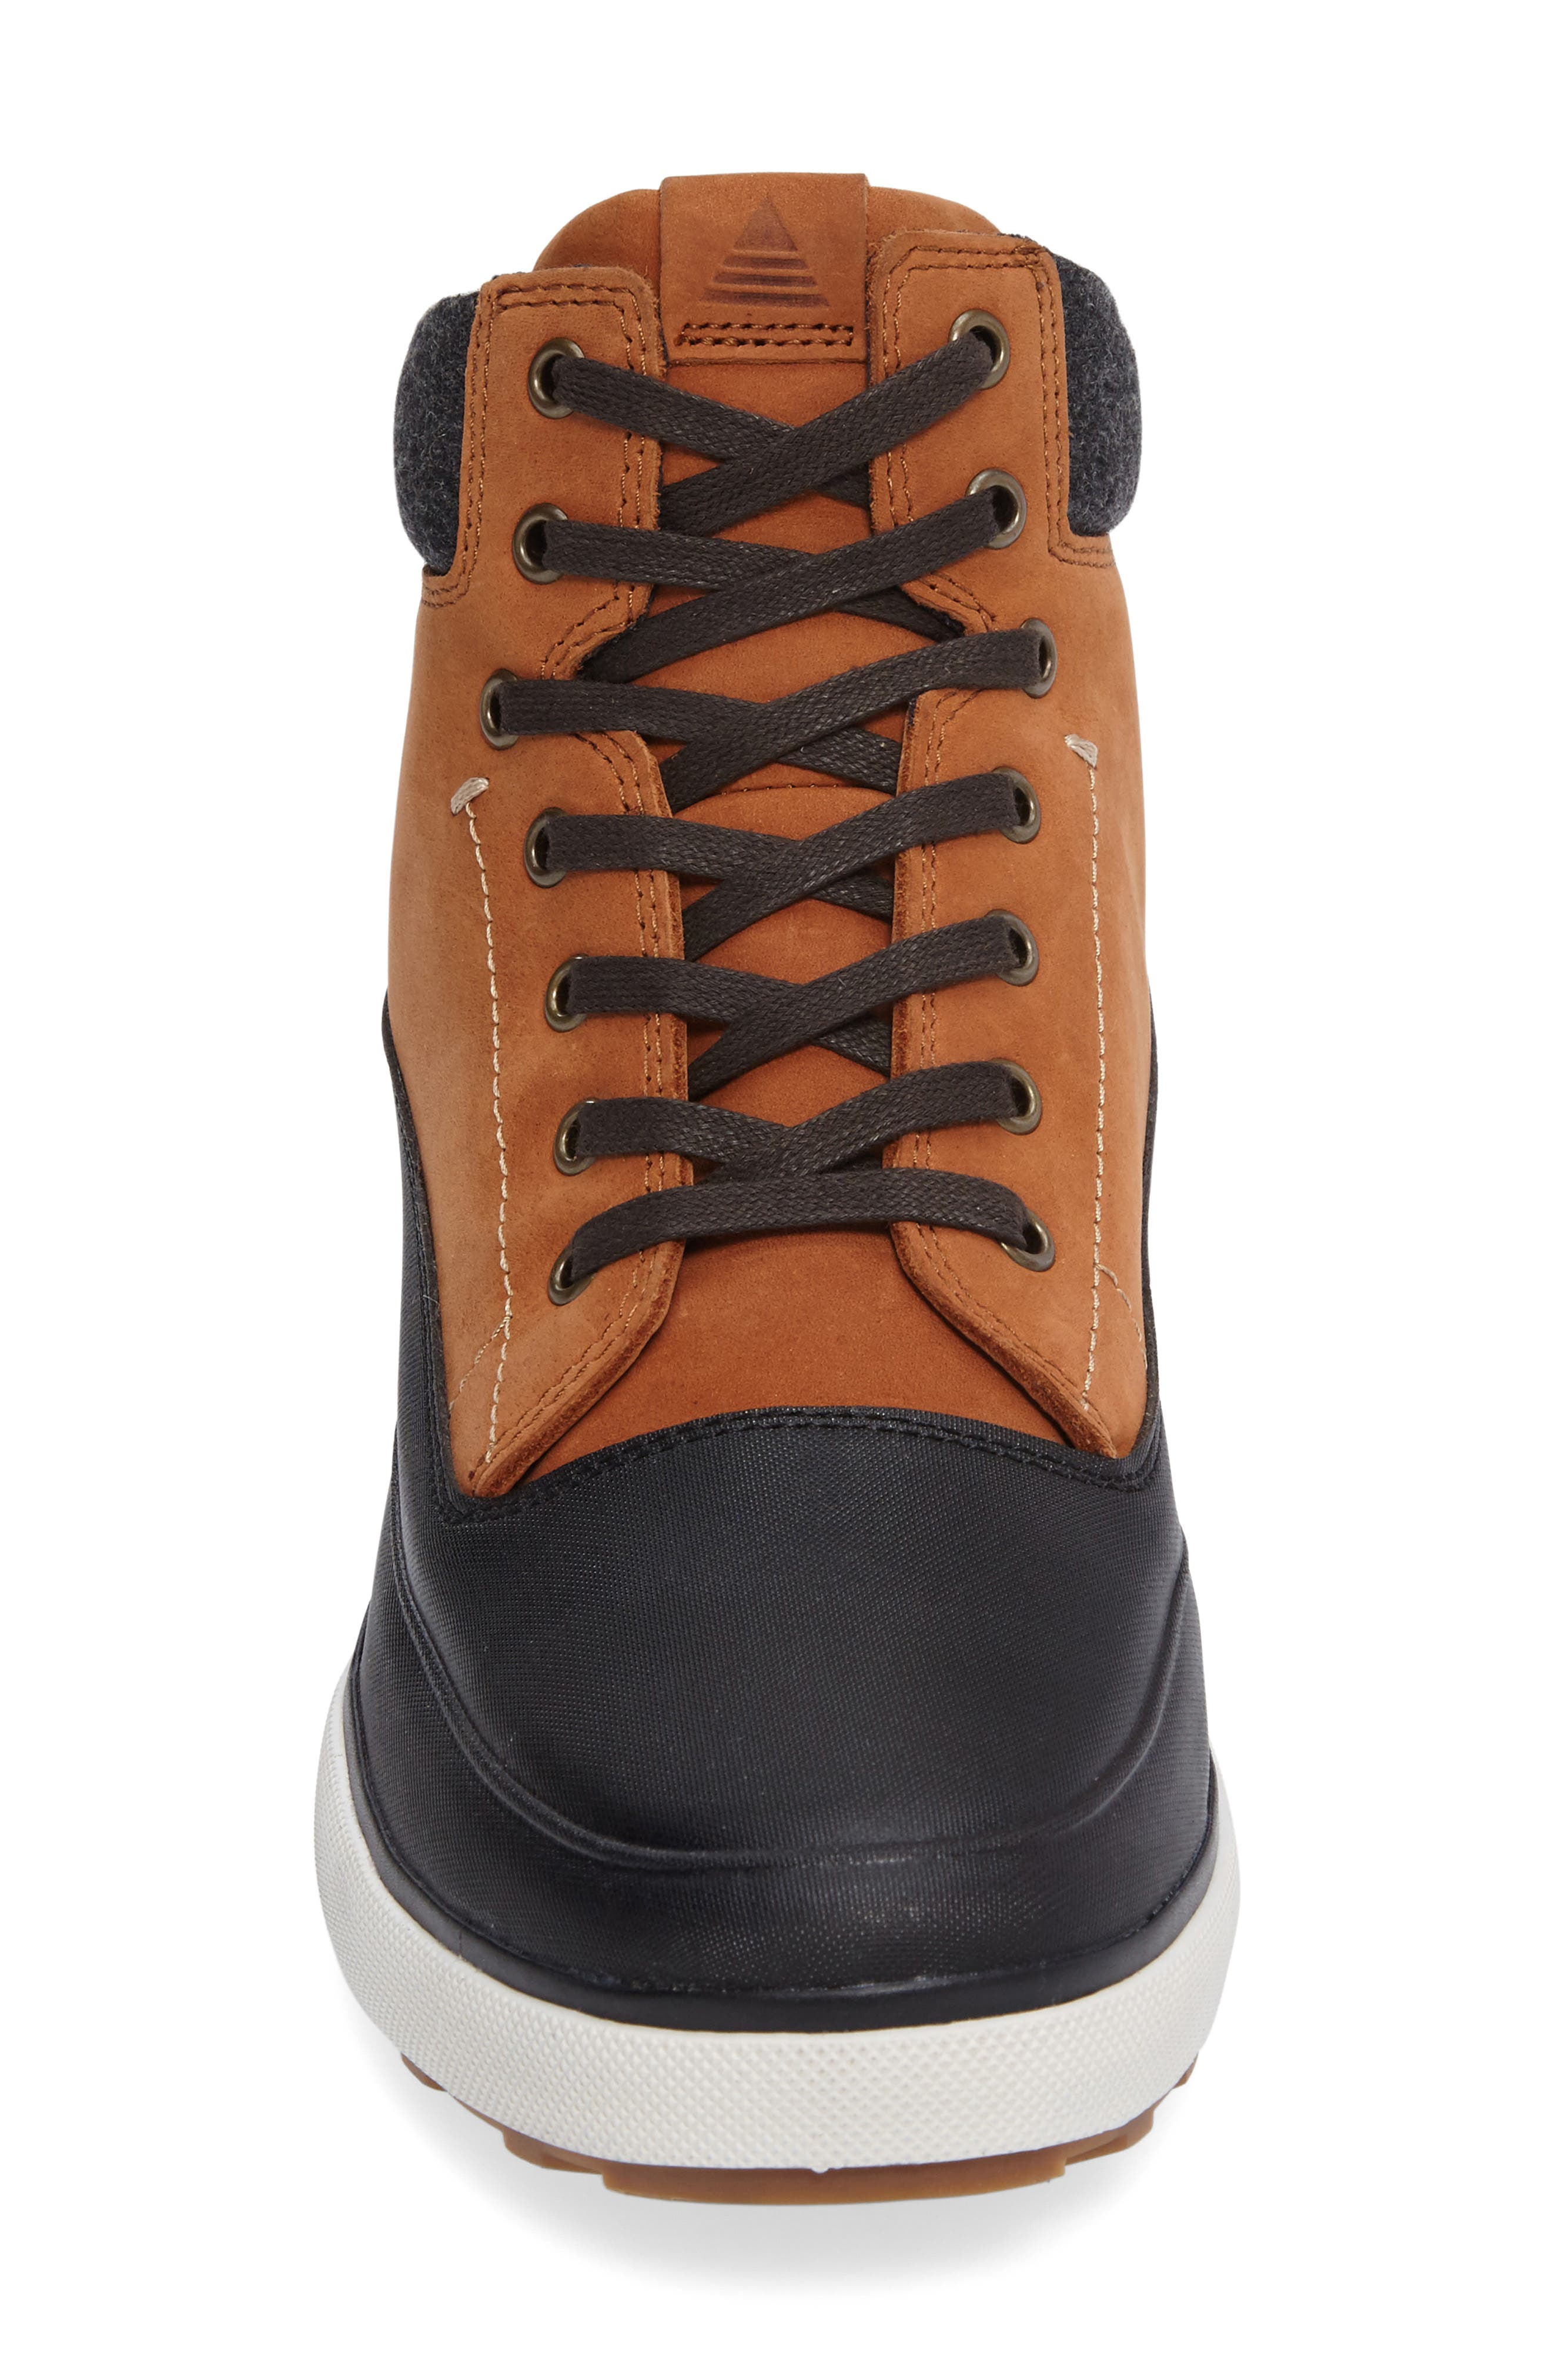 ALDO,                             Benis Boot,                             Alternate thumbnail 3, color,                             240